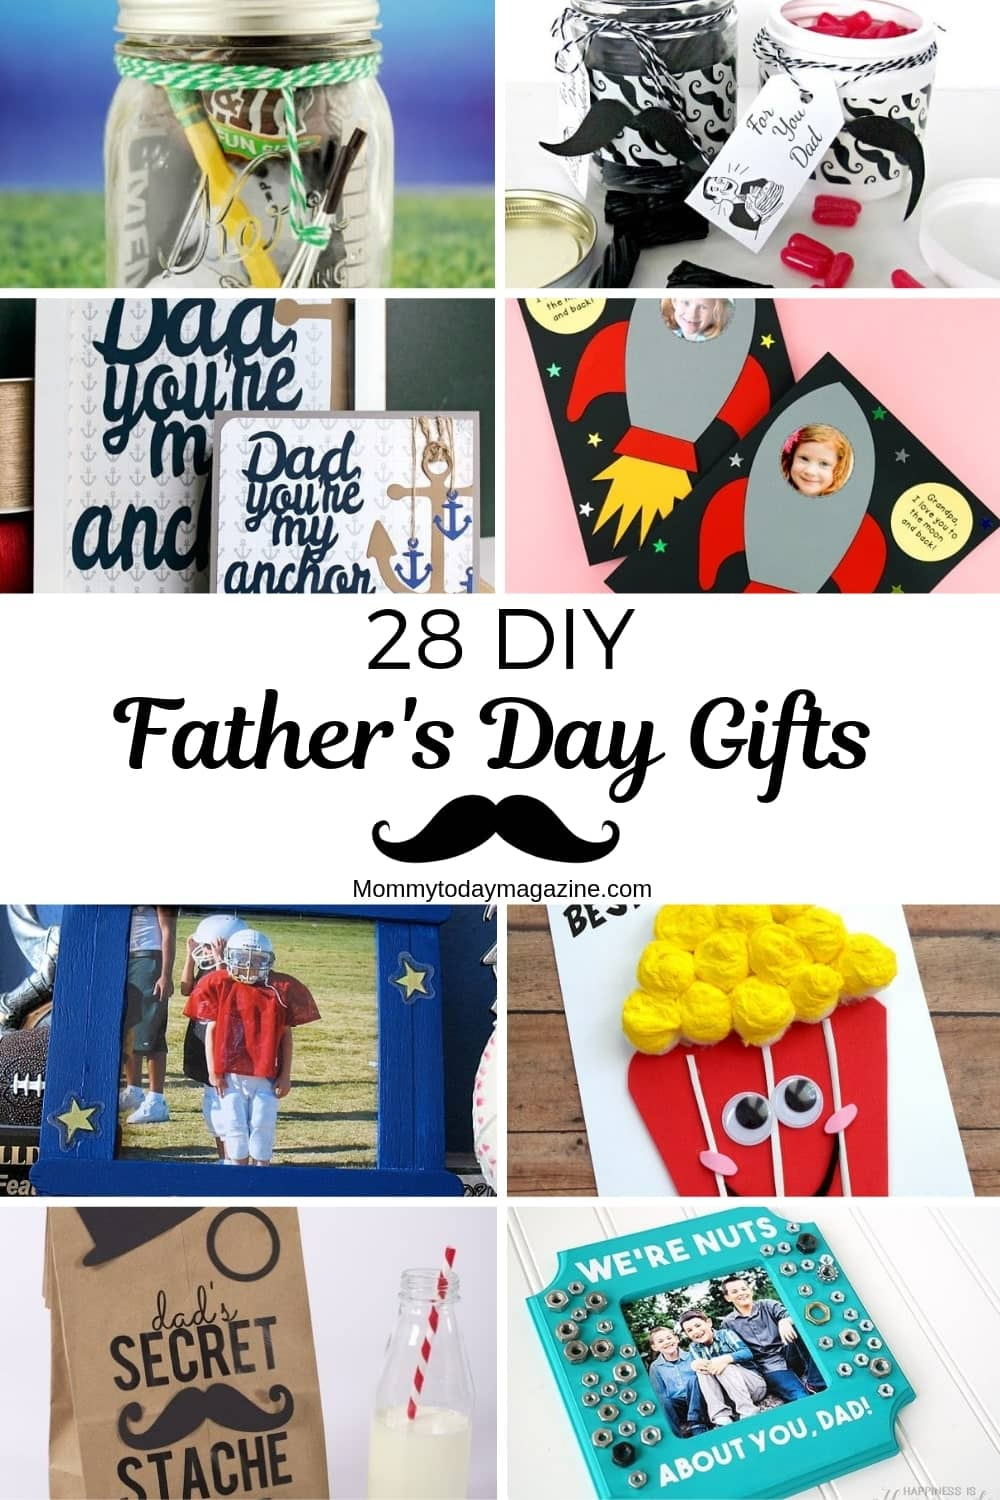 DIY Father's Day Gifts - The Best Homemade Gift Ideas for Dad